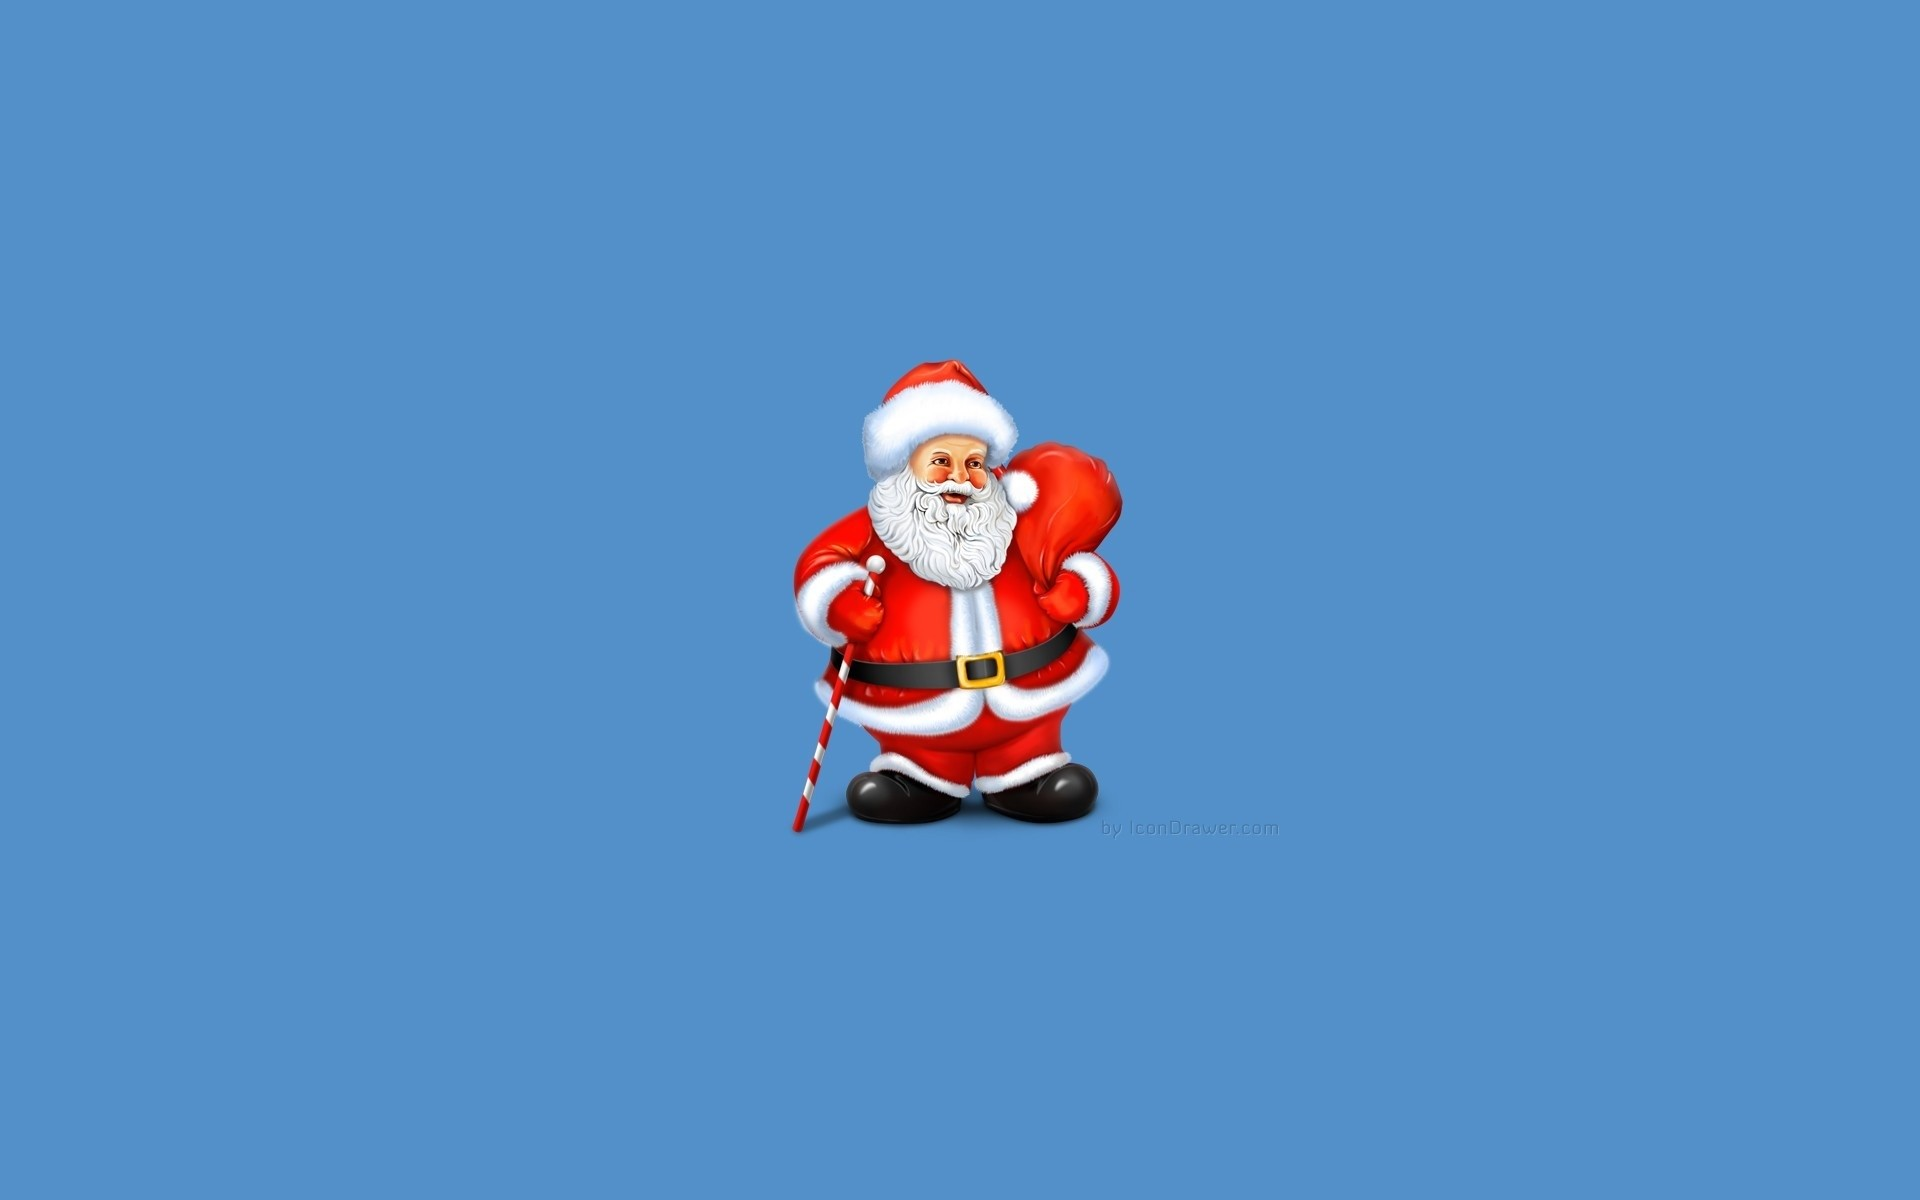 1920x1200 2012 Santa Claus Illustration wallpapers and stock photos